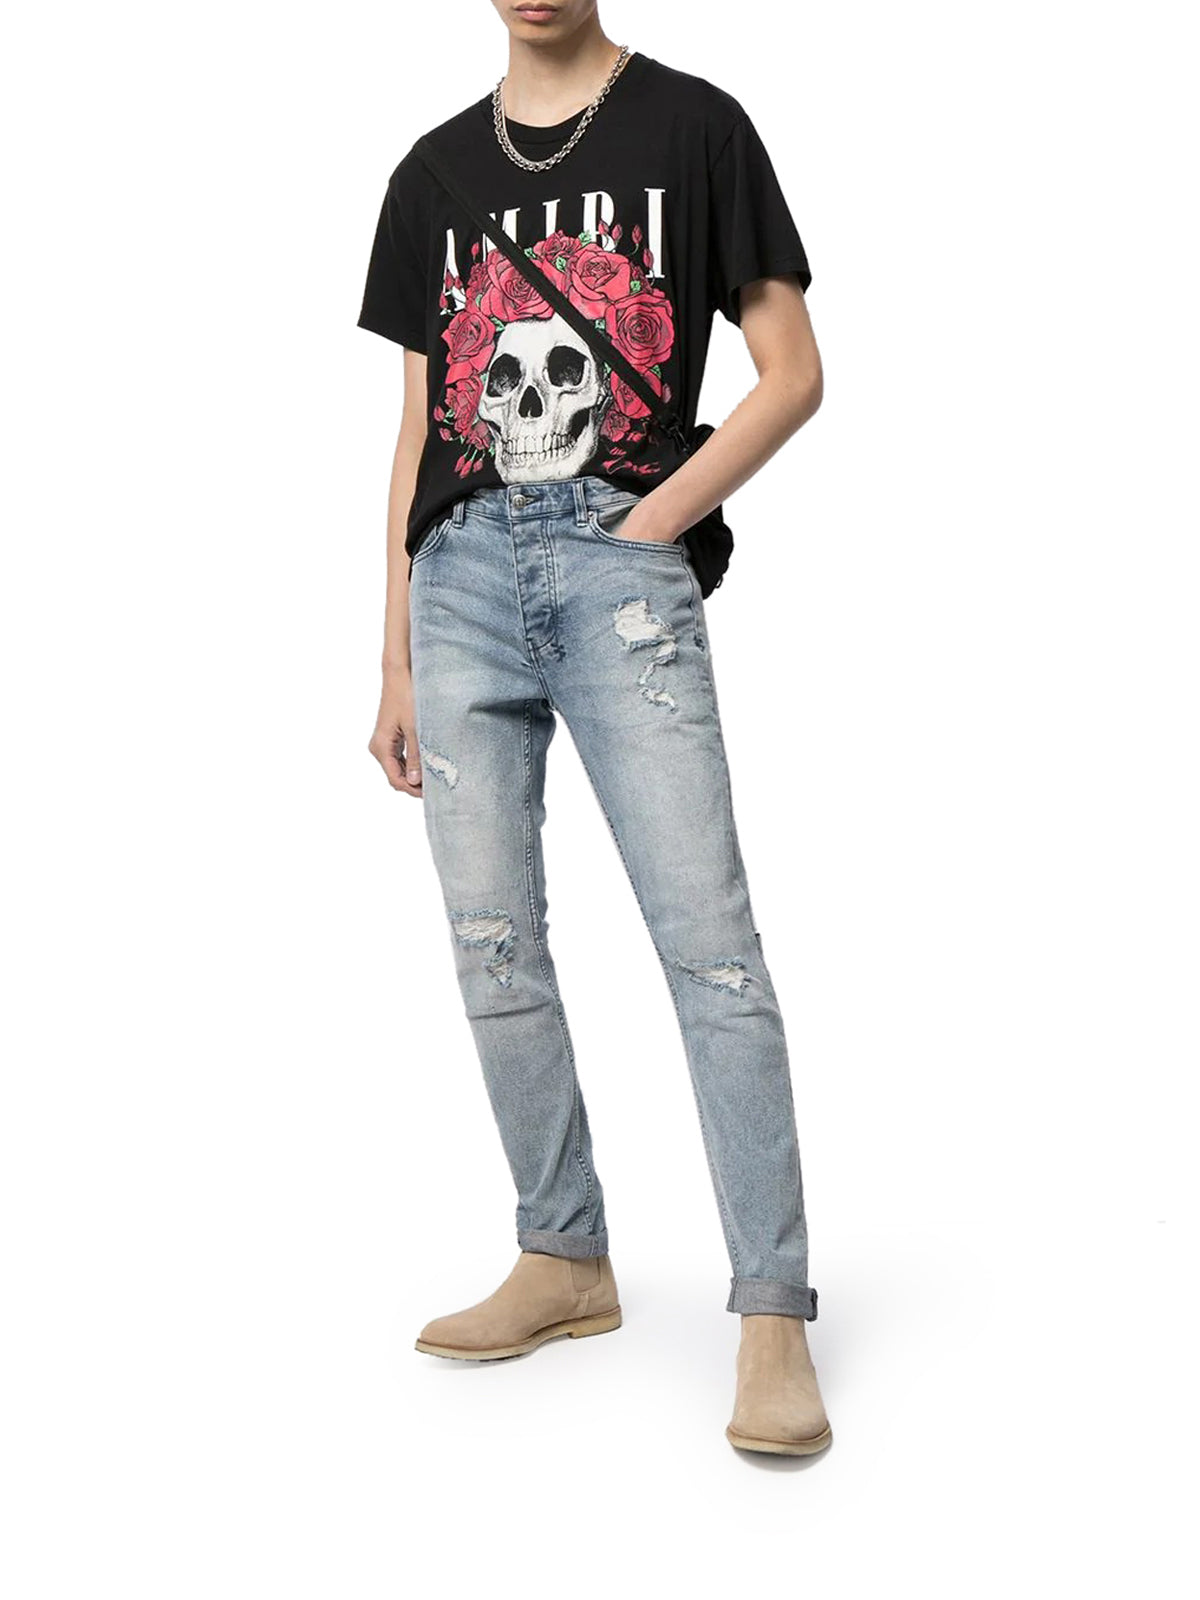 Grateful Dead skull-print cotton T-shirt